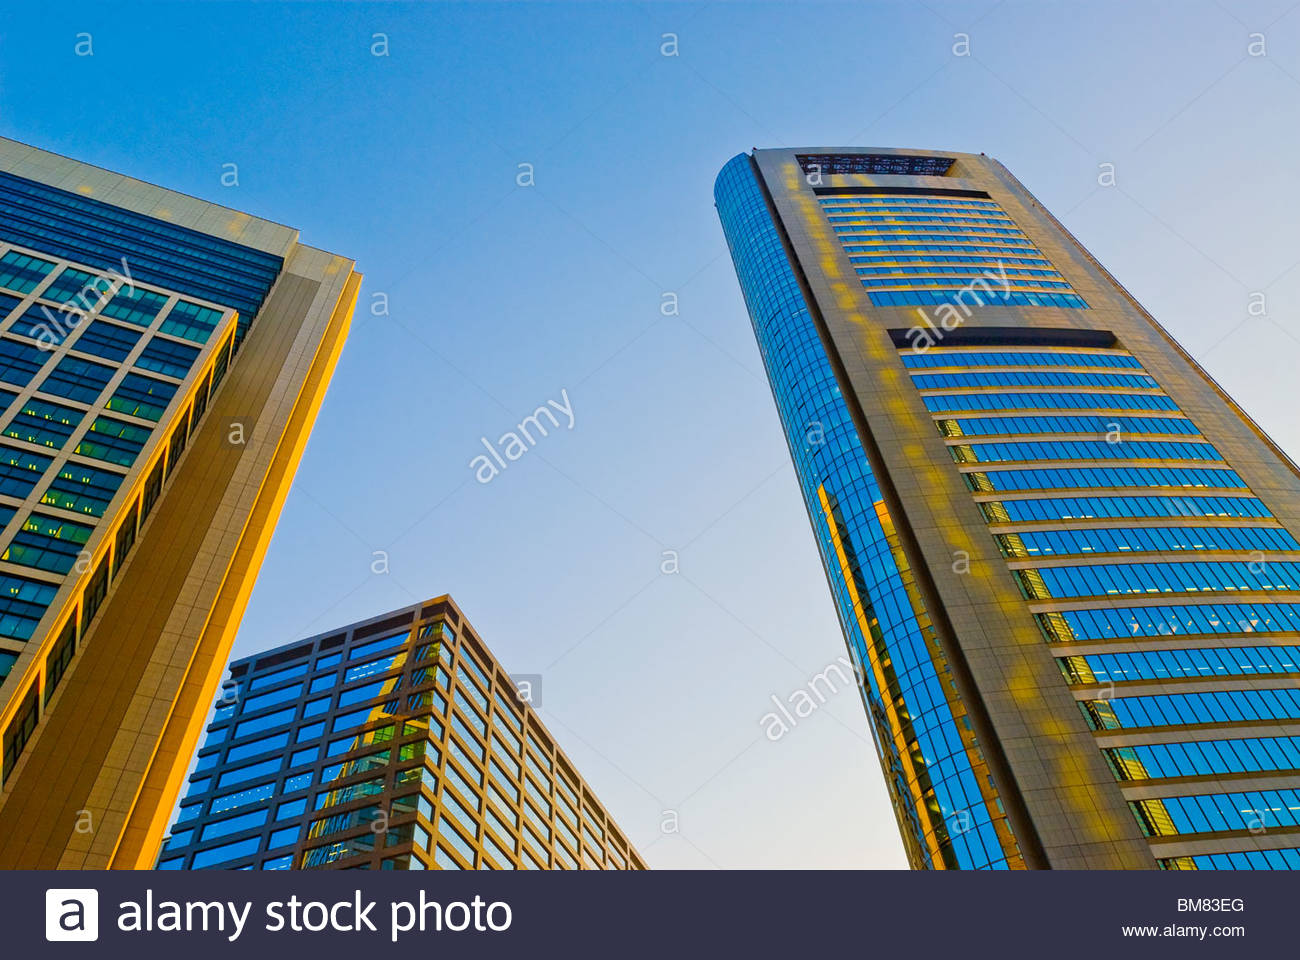 Looking Up Skyscraper Office Building Towers in Shiodome. - Stock Image